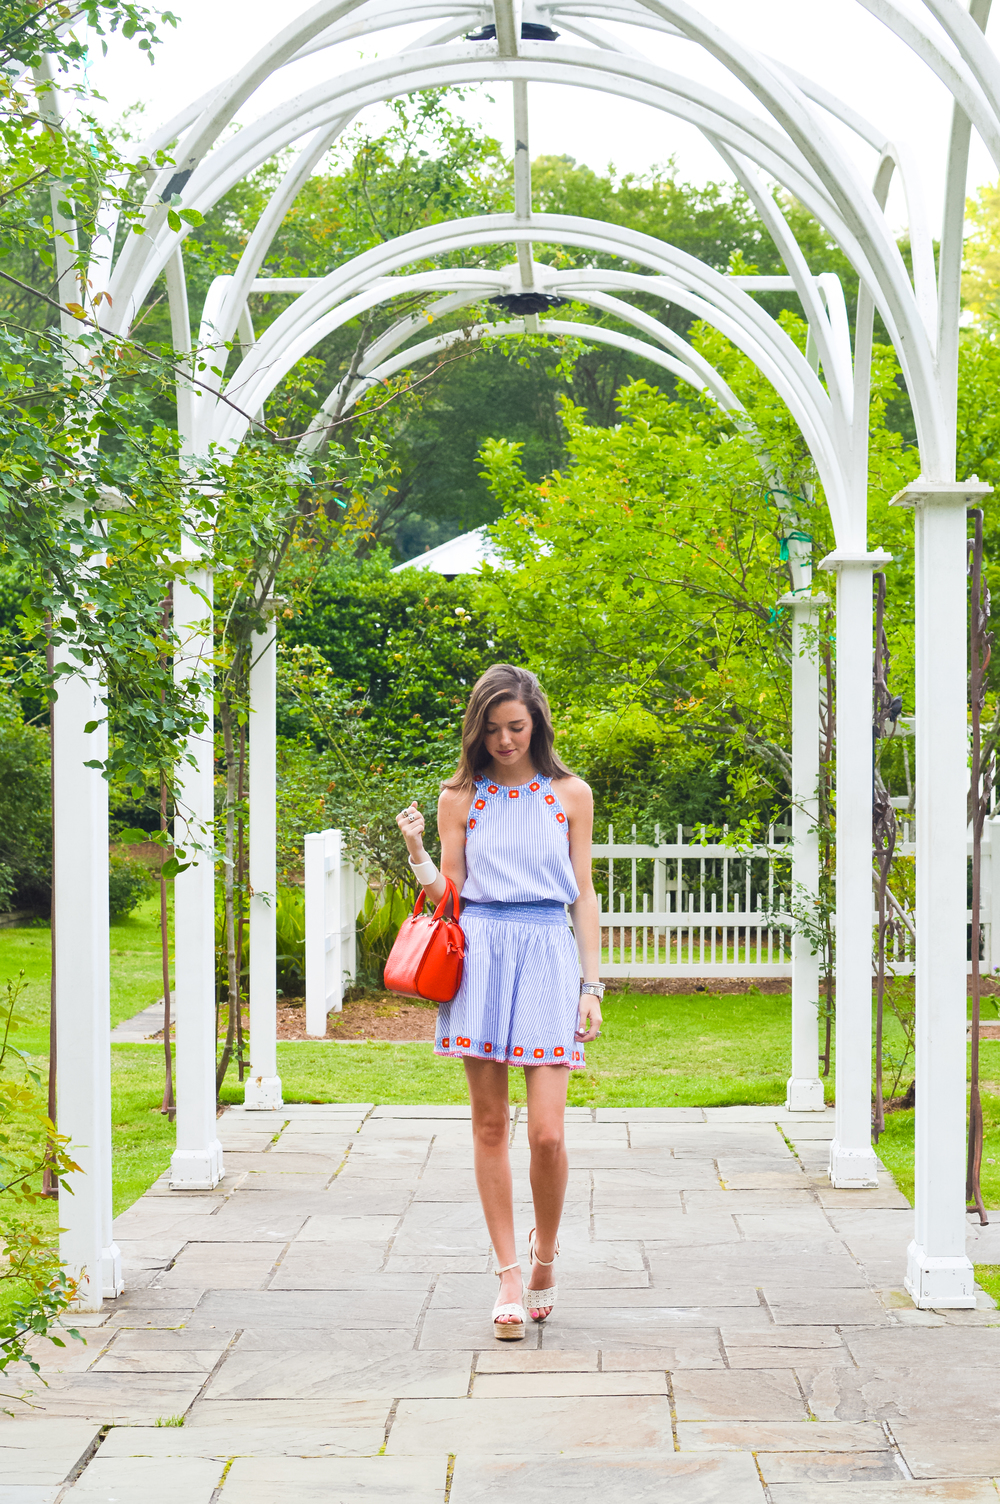 lcb_style_fashion_blogger_tory_burch_ss16 (84 of 93).jpg